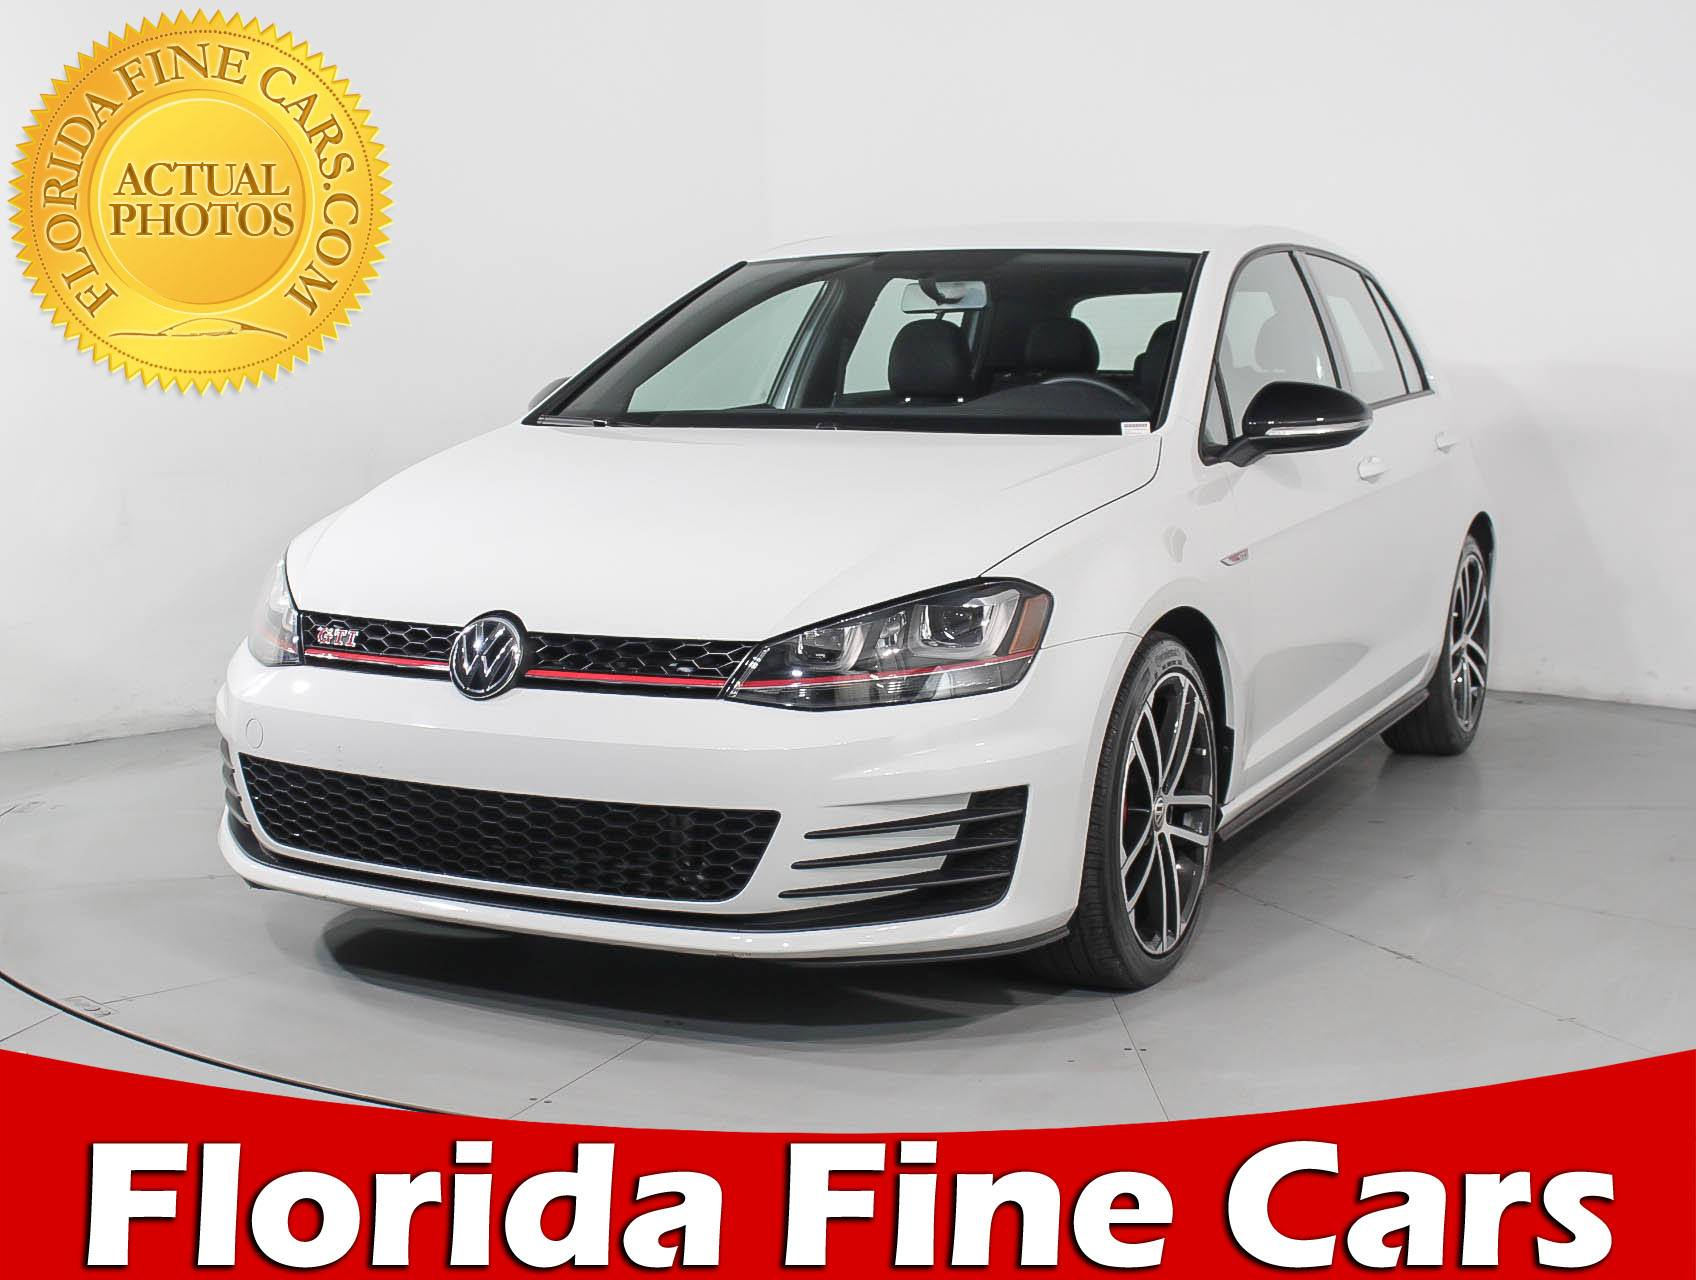 stock manufacturers as volkswagen sales copy space image dealership including car dealer editorial concepts miami of whole dealerships